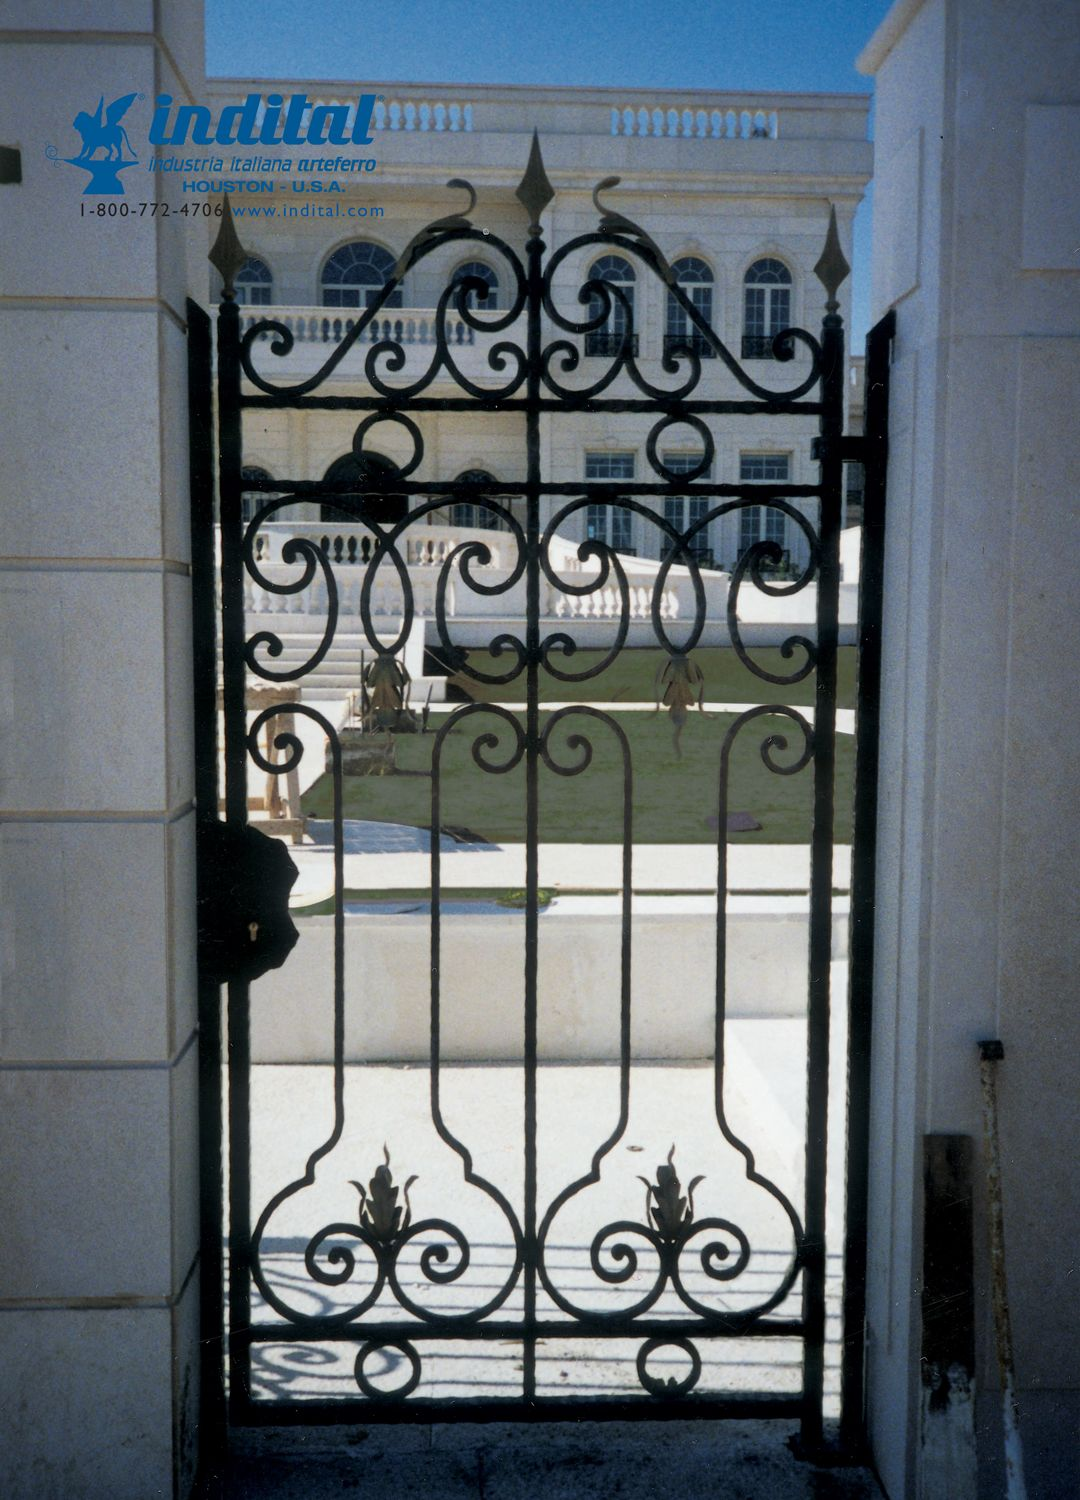 Our Wrought Iron Bars And Scrolls Make An Elegant Gate Wrought Iron Stairs Wrought Iron Fences Wrought Iron